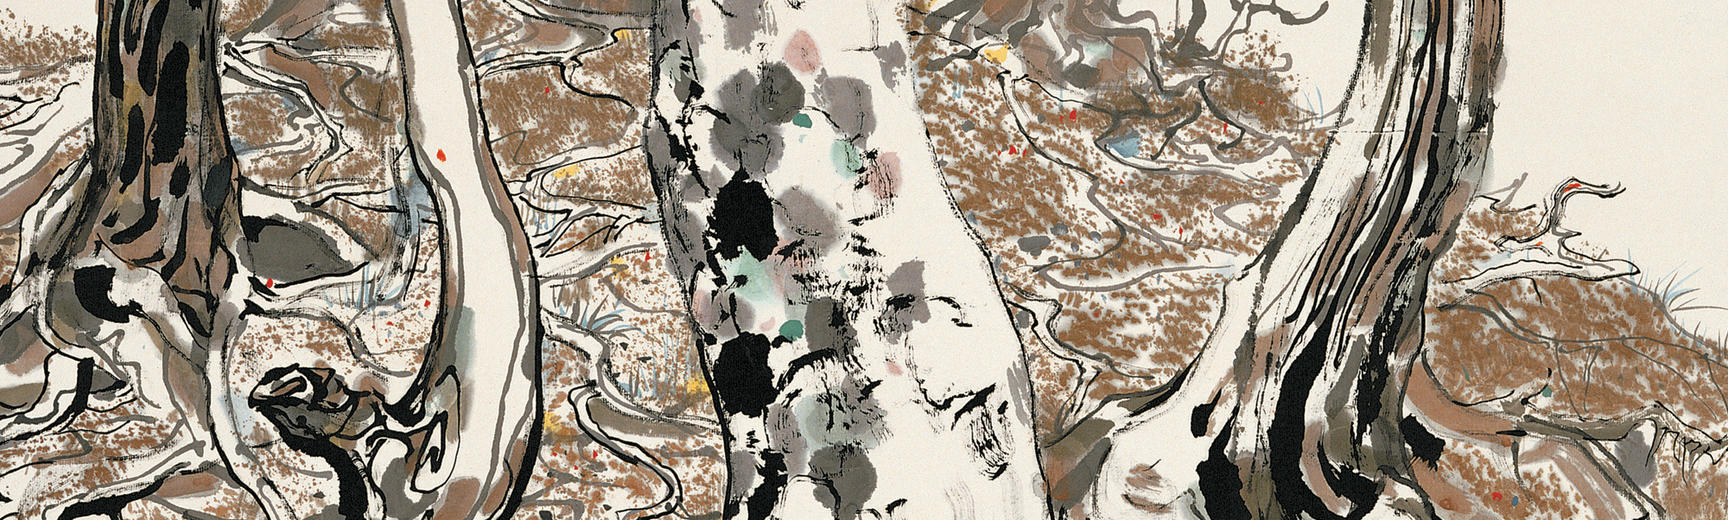 Detail from a painting of tree roots by Wu Guanzhong